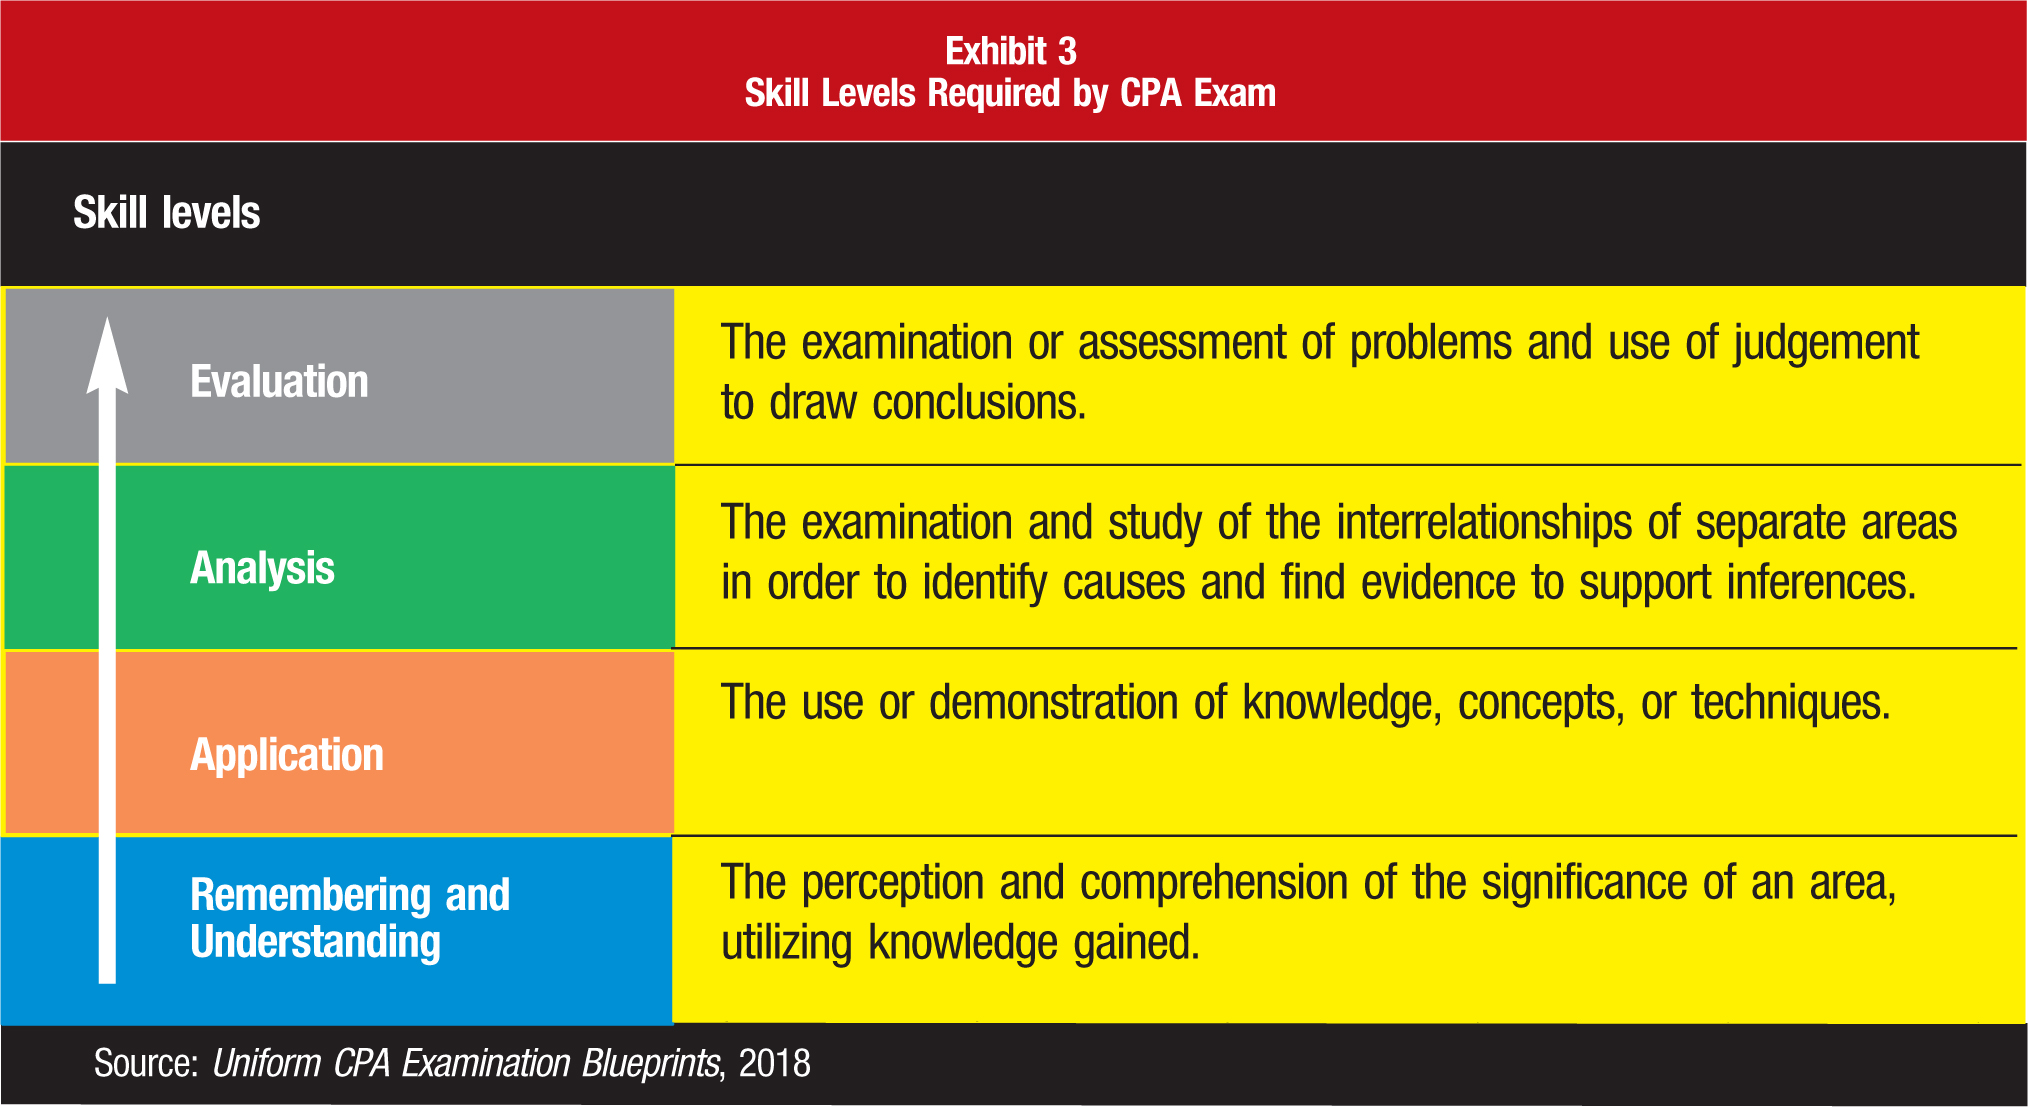 Skill levels Evaluation; The examination or assessment of problems and use of judgement to draw conclusions. Analysis; The examination and study of the interrelationships of separate areas in order to identify causes and find evidence to support inferences. Application; The use or demonstration of knowledge, concepts, or techniques. Remembering and Understanding; The perception and comprehension of the significance of an area, utilizing knowledge gained. Source: Uniform CPA Examination Blueprints, 2018